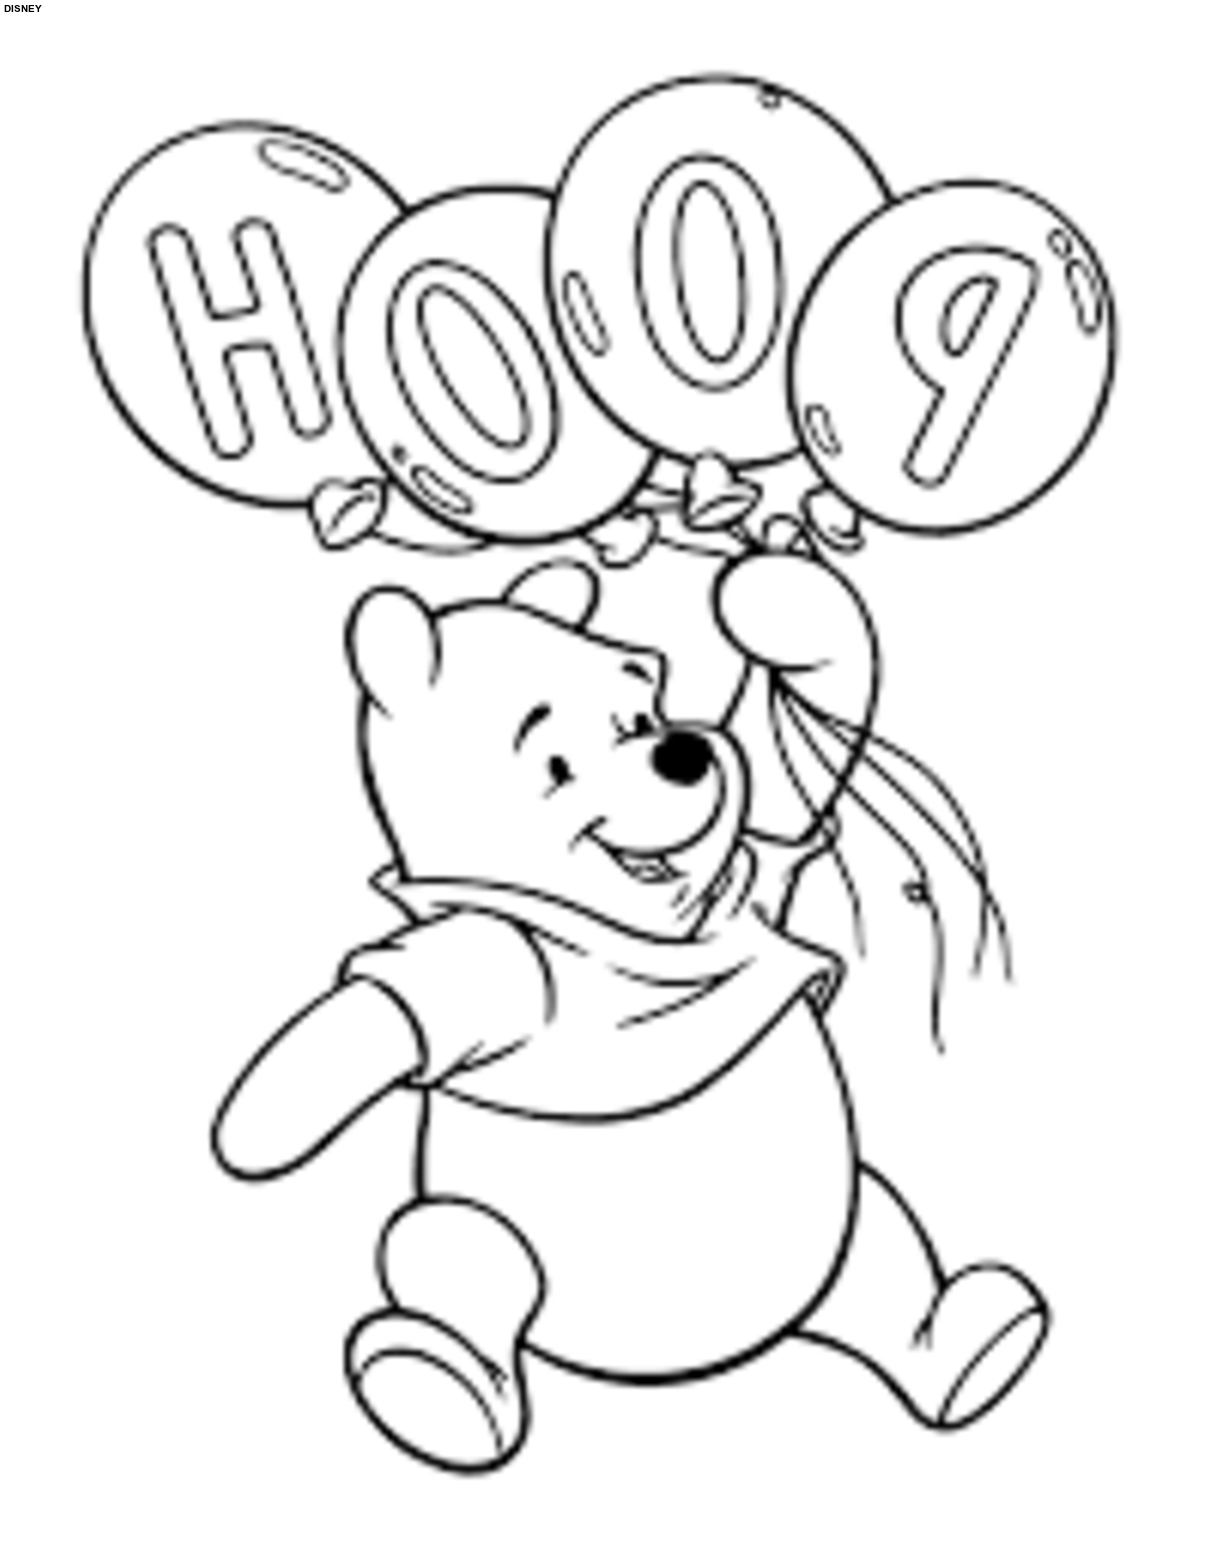 Disney colouring pages cartoon characters coloring pages | coloring ...